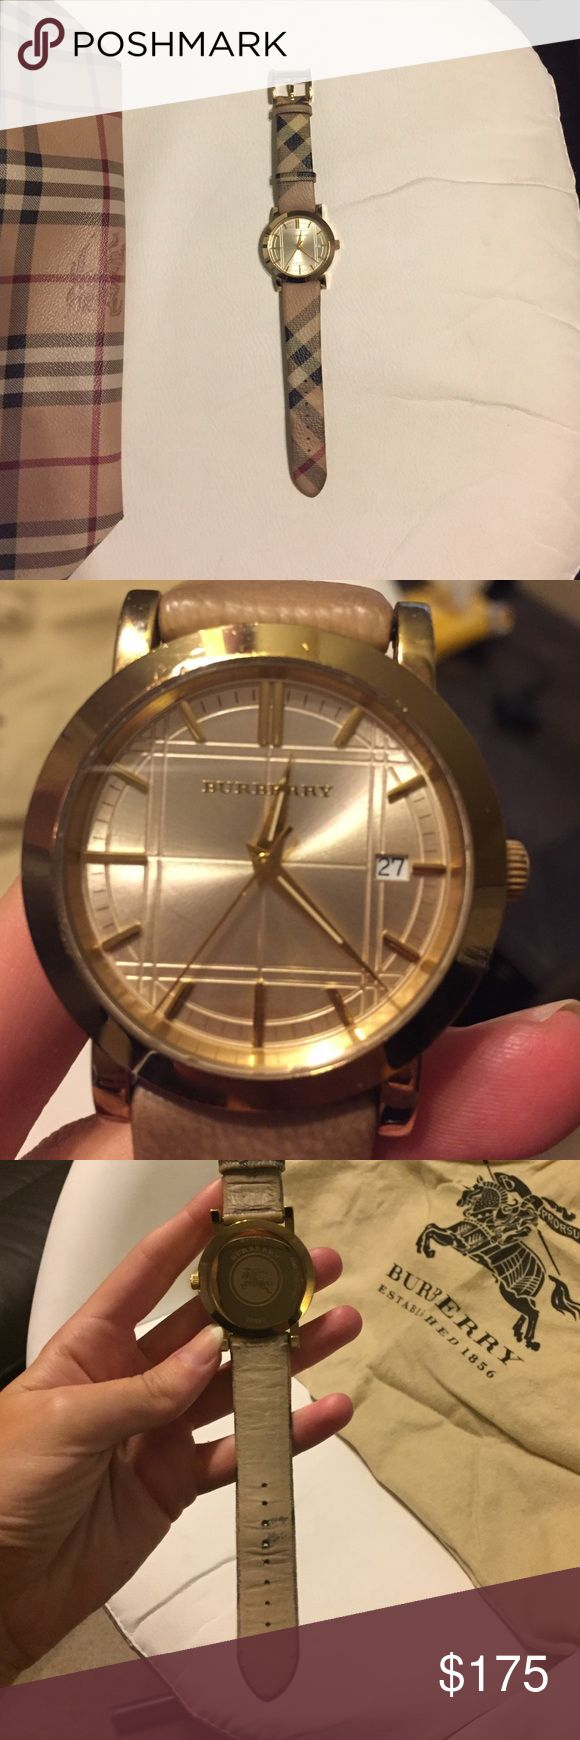 Burberry watch Used Burberry watch- needs new battery. Leather on back worn around holes but not noticeable when worn, small scratch on gold face as pictured. Burberry print leather band in great shape. Burberry Accessories Watches